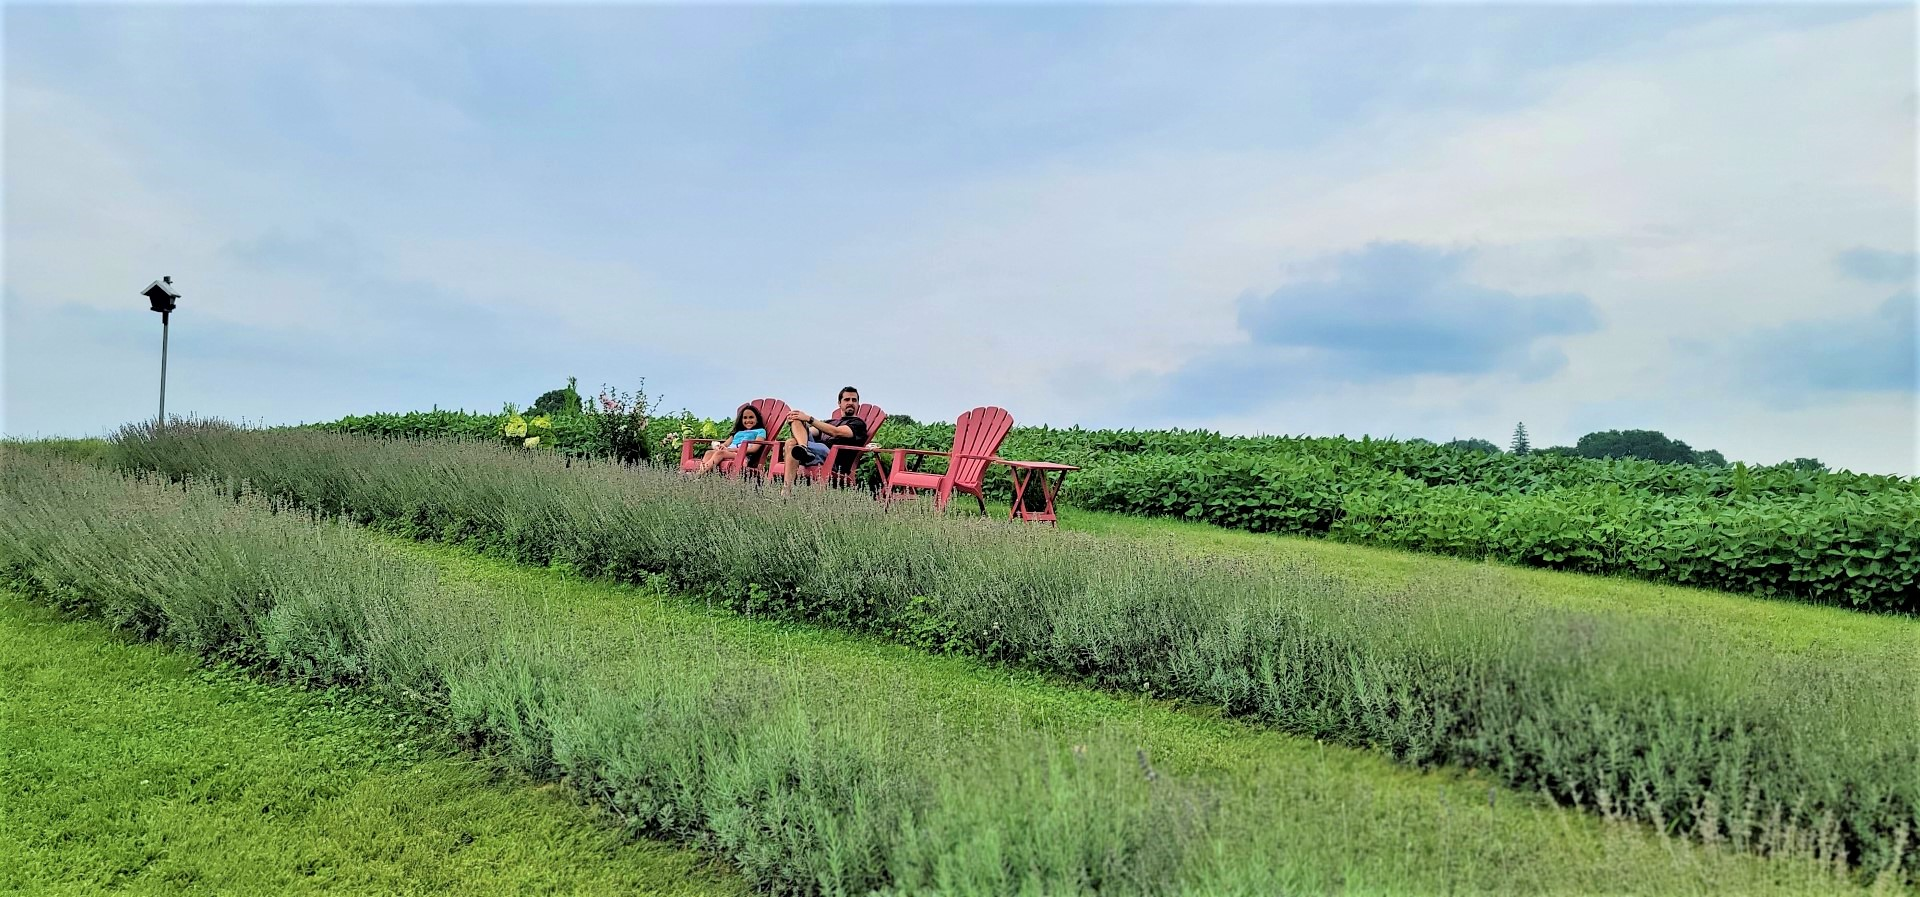 family in red chairs in middle of apple hill lavender farm